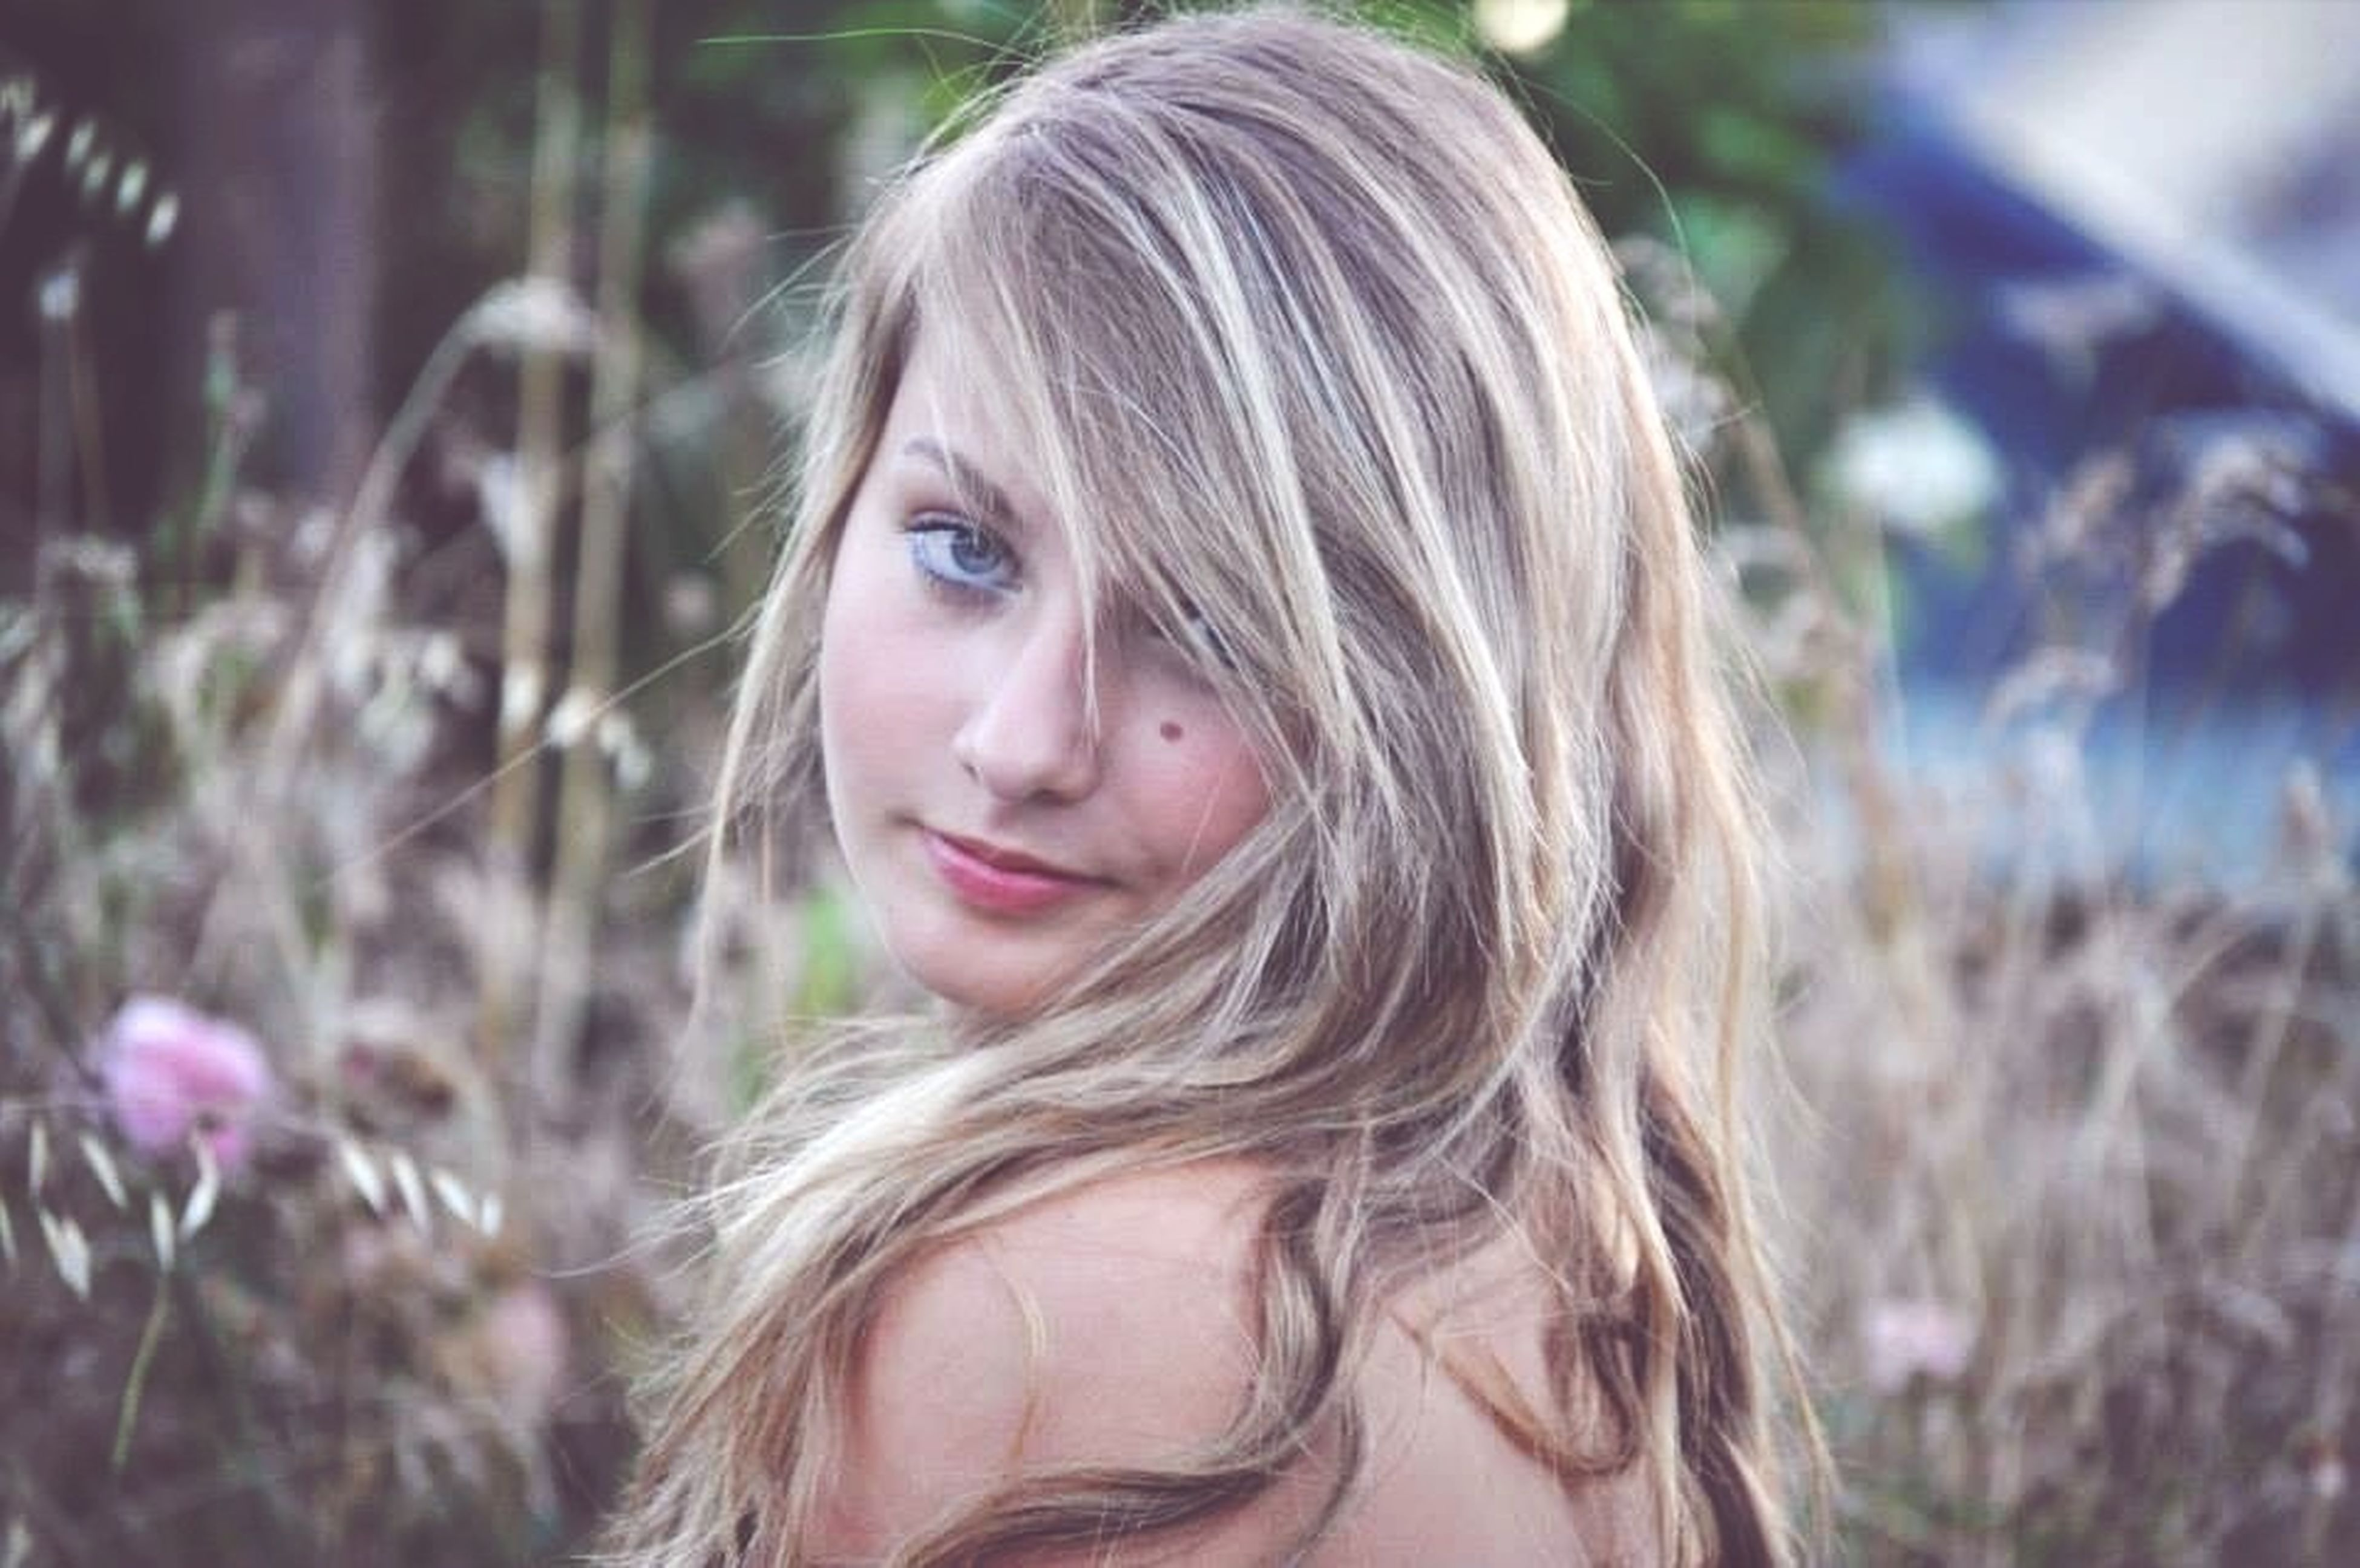 person, headshot, portrait, looking at camera, focus on foreground, lifestyles, young adult, young women, leisure activity, front view, smiling, close-up, long hair, casual clothing, blond hair, head and shoulders, happiness